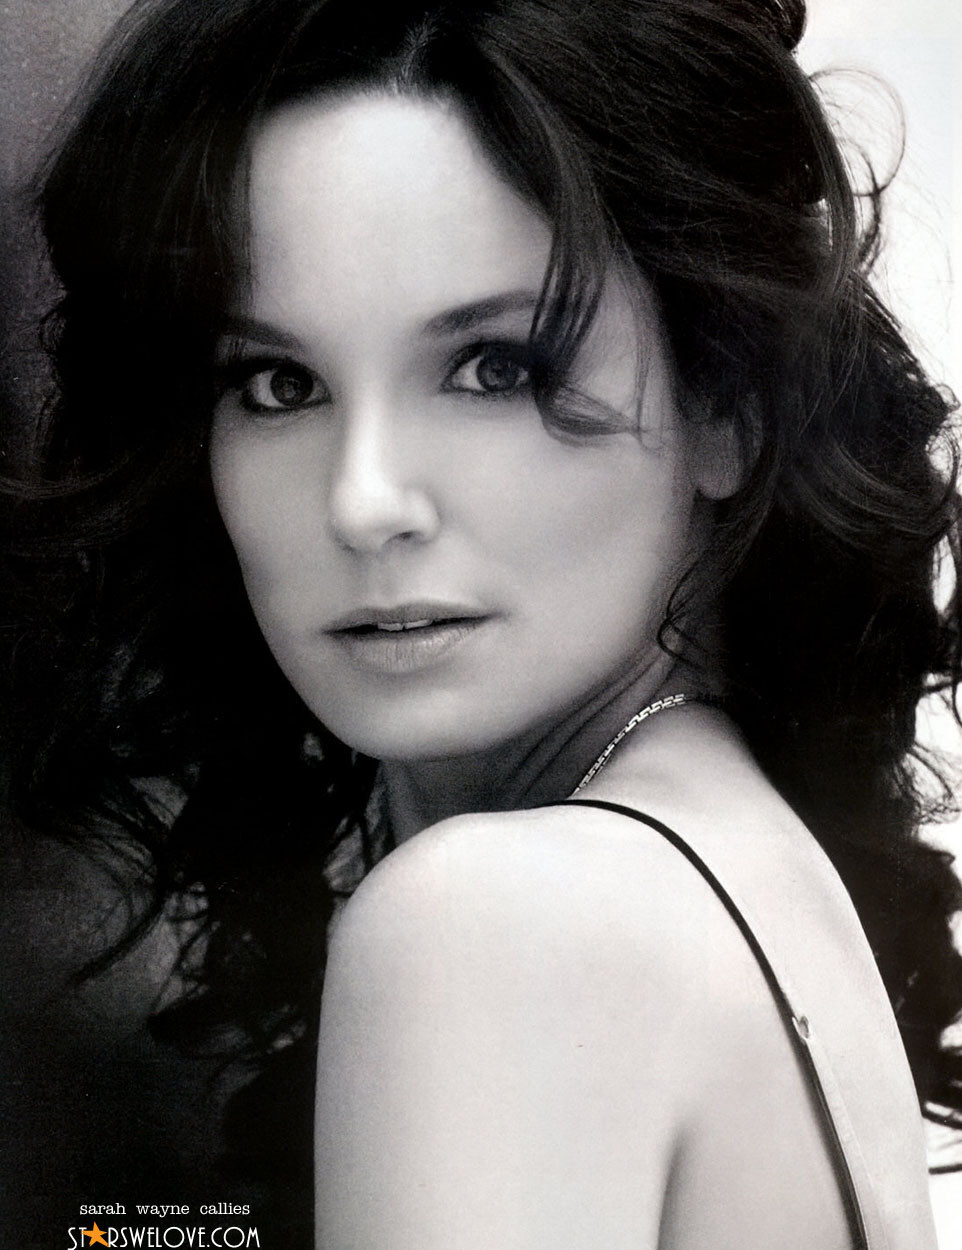 Sarah Wayne Callies photo (sarah_wayne_callies003, 962 x 1250 pixels, 188 kB)